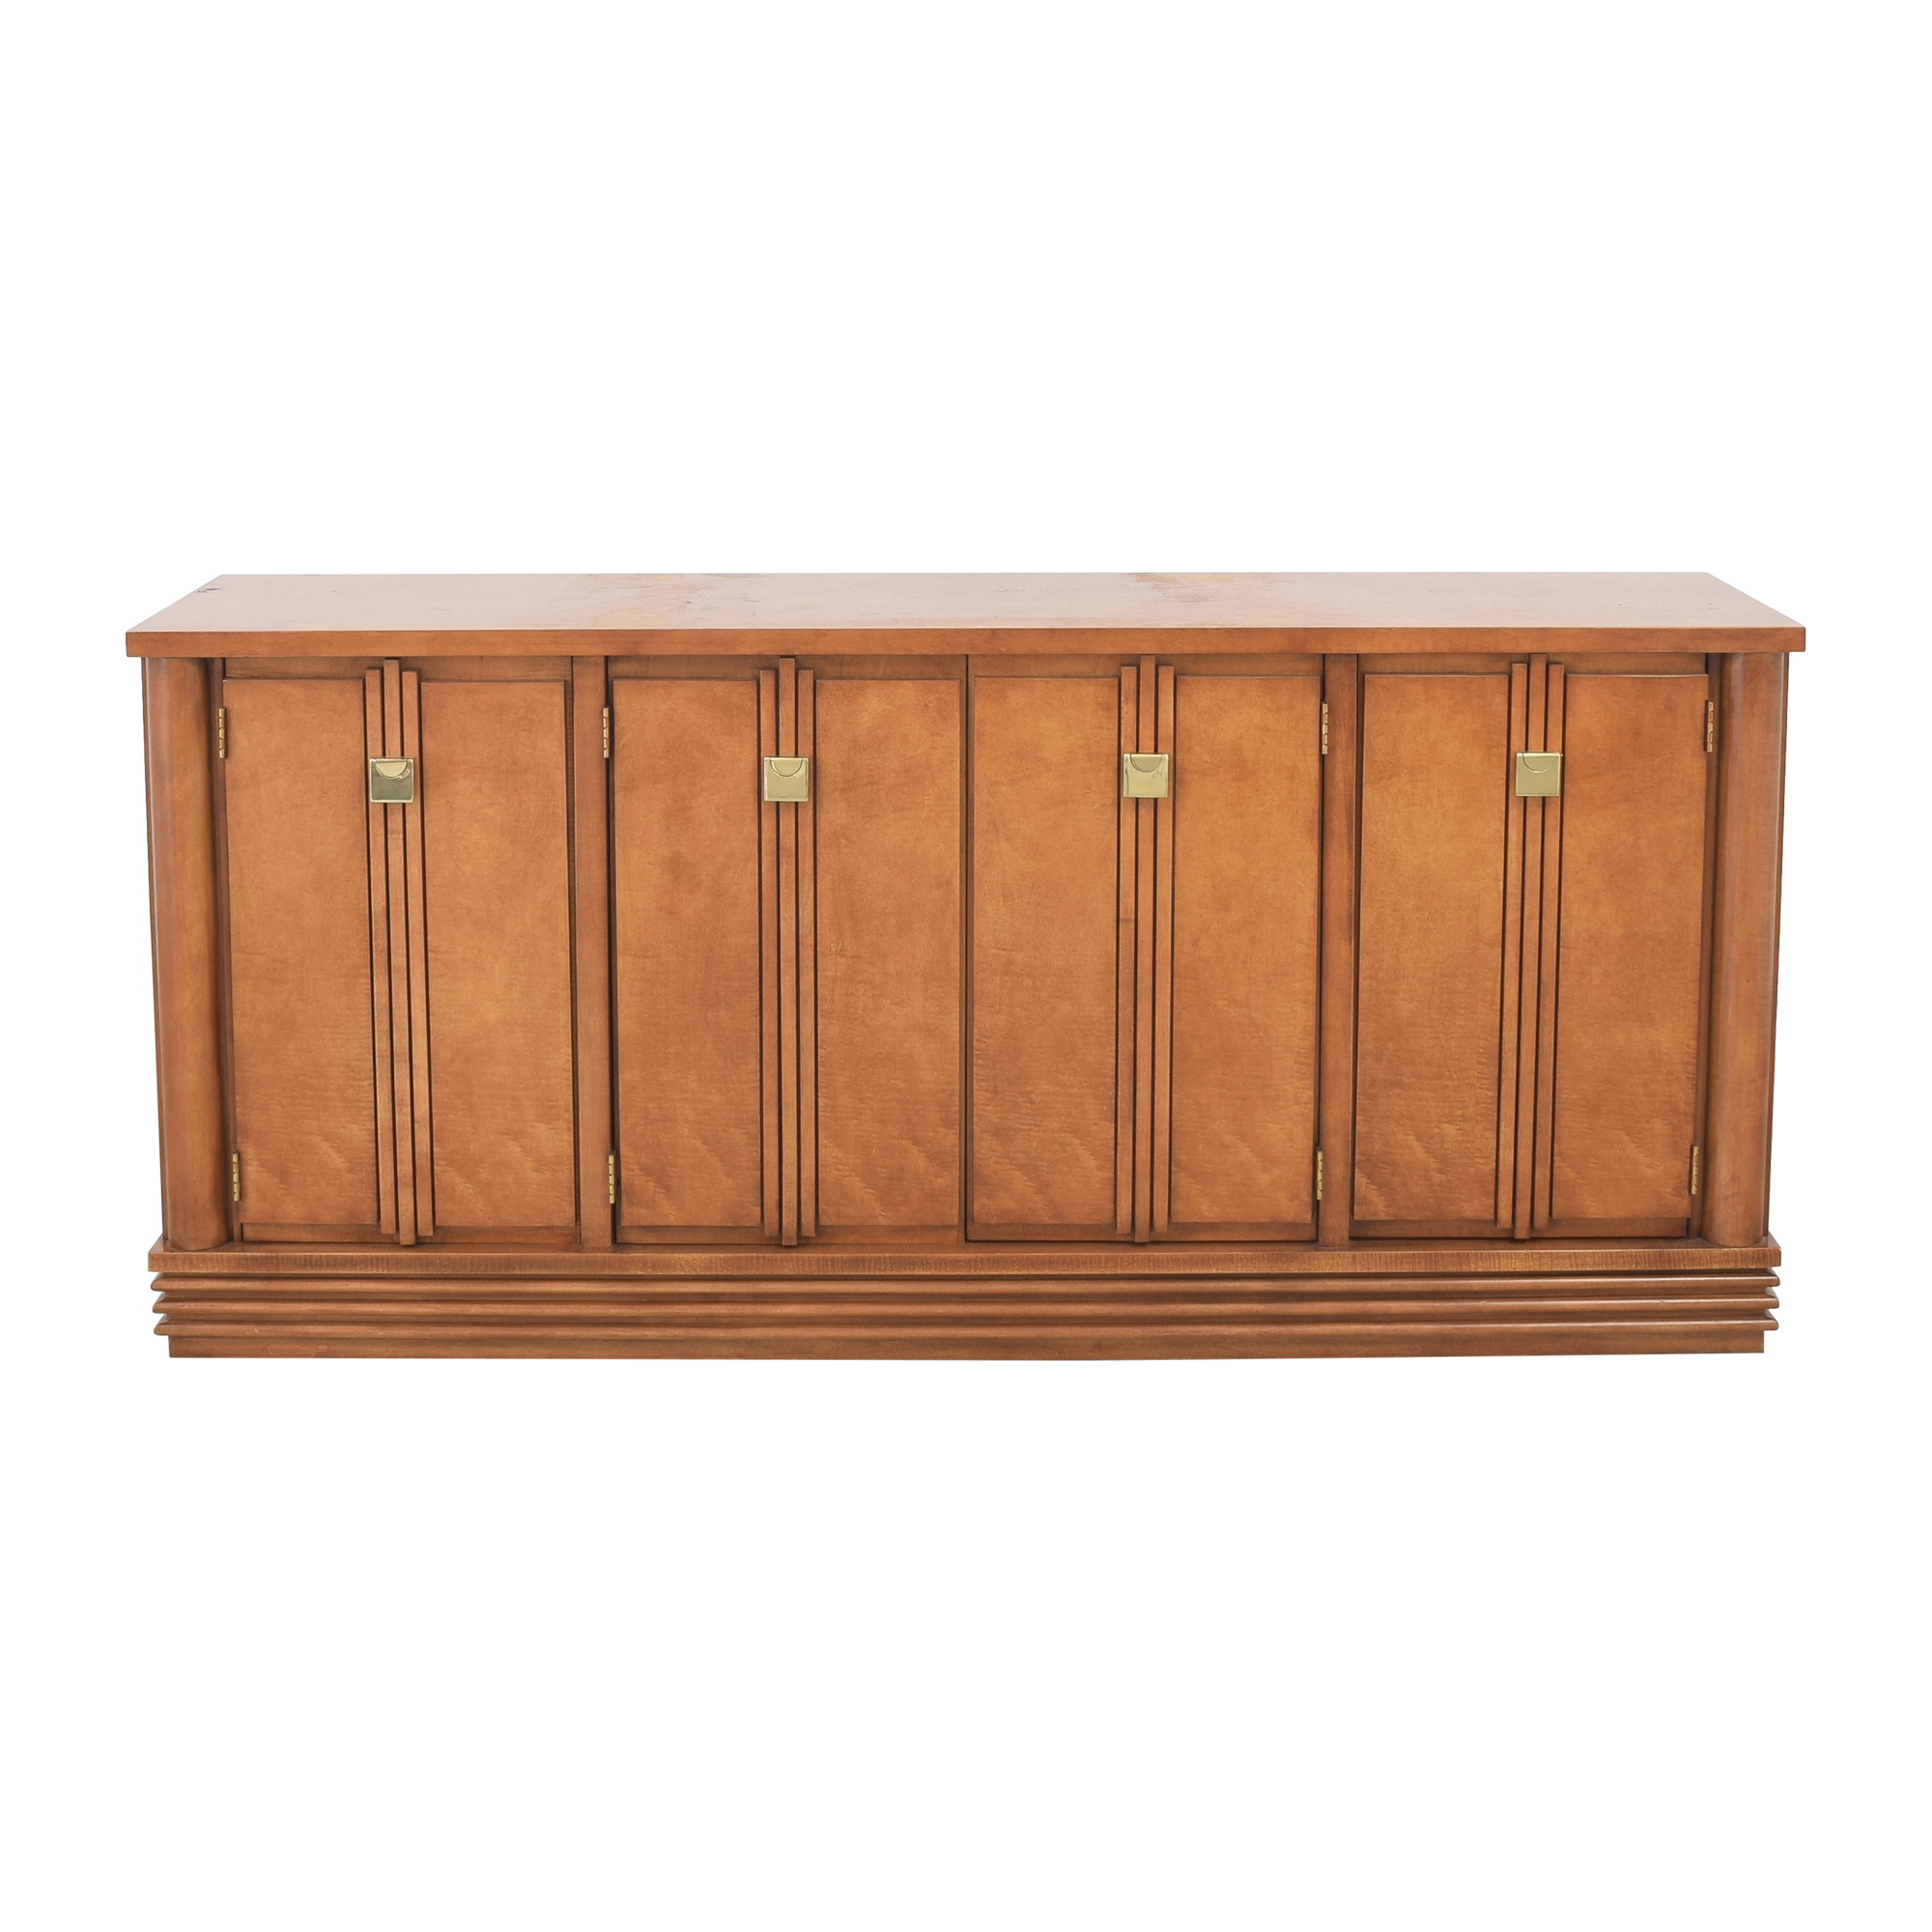 Hickory White Hickory White Biedermeier Genesis Neoclassical Sideboard pa